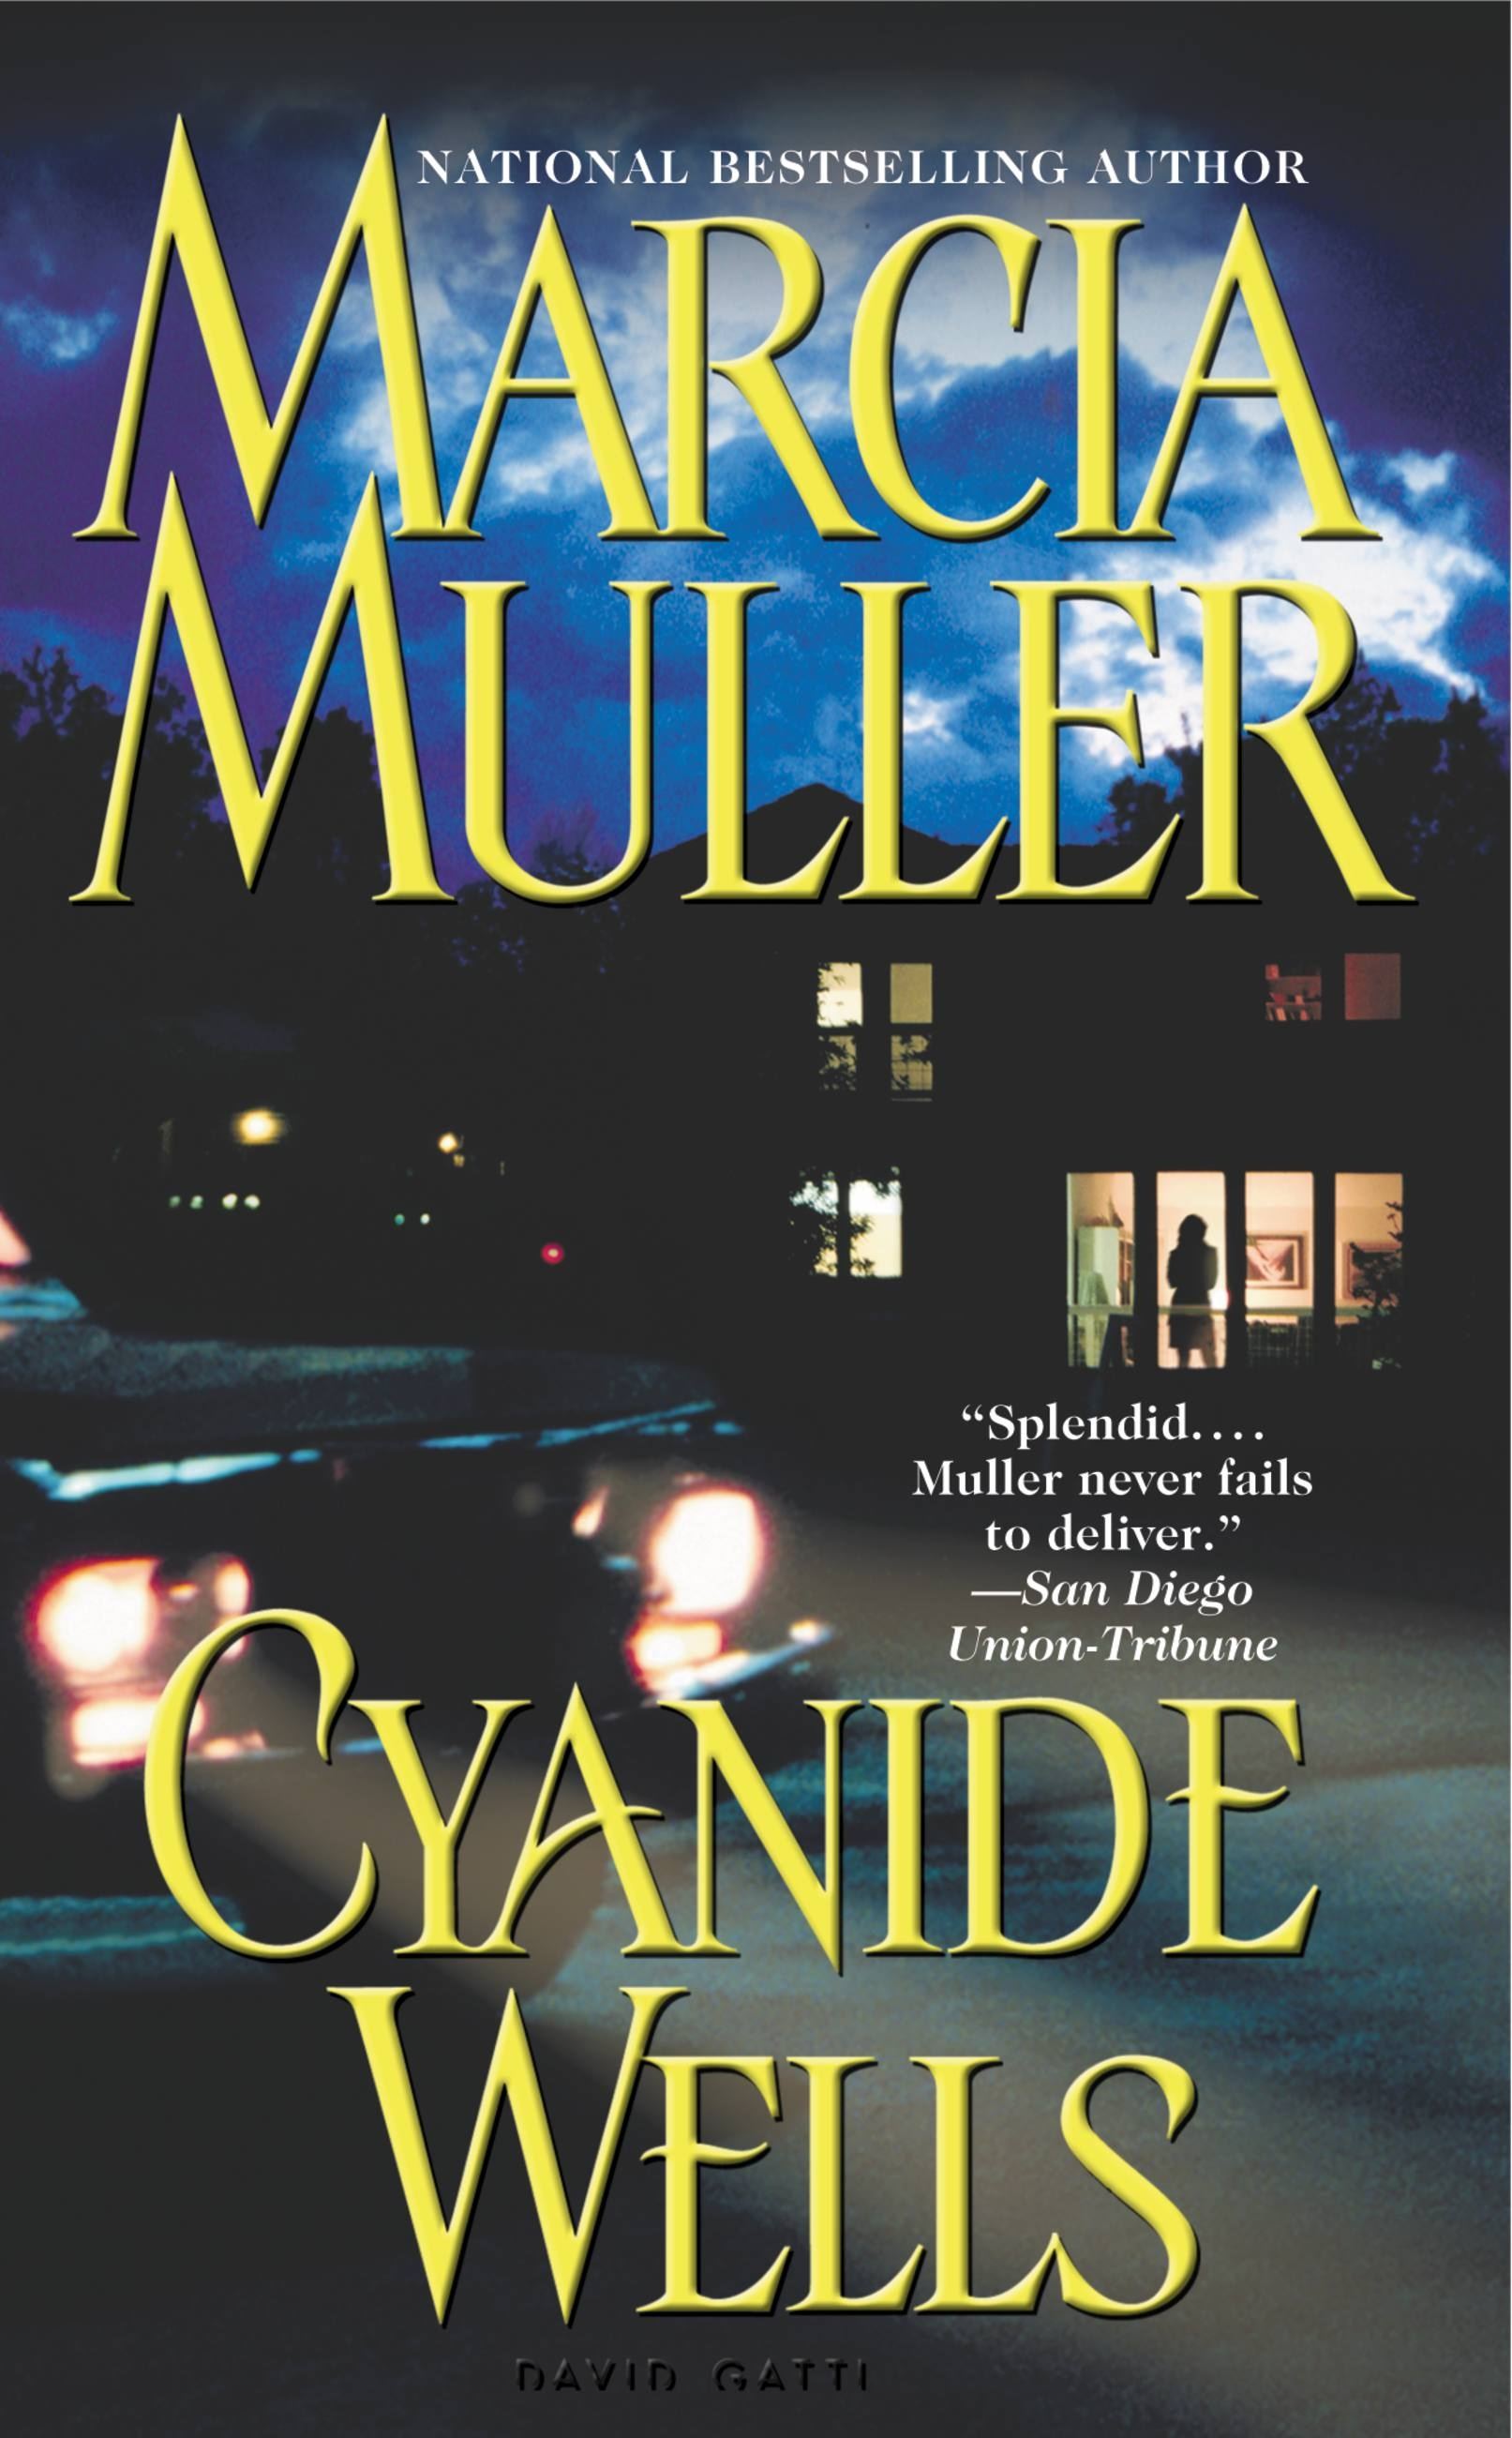 Cyanide Wells by Marcia Muller | Hachette Book Group